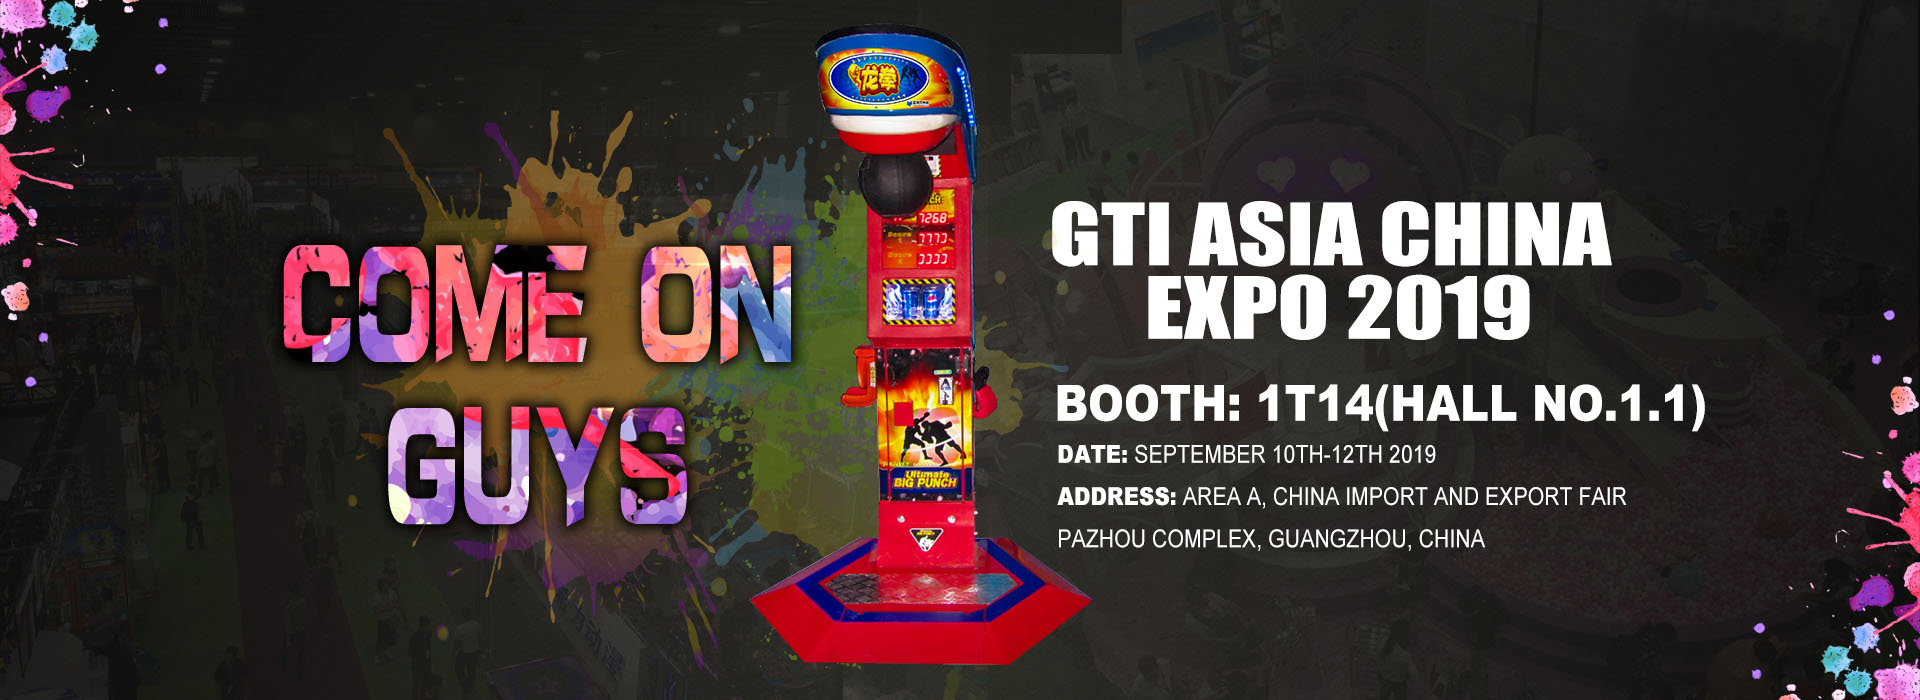 GTI Asia China Expo 2019, Neofuns Invites You to Join in this Exhibition.